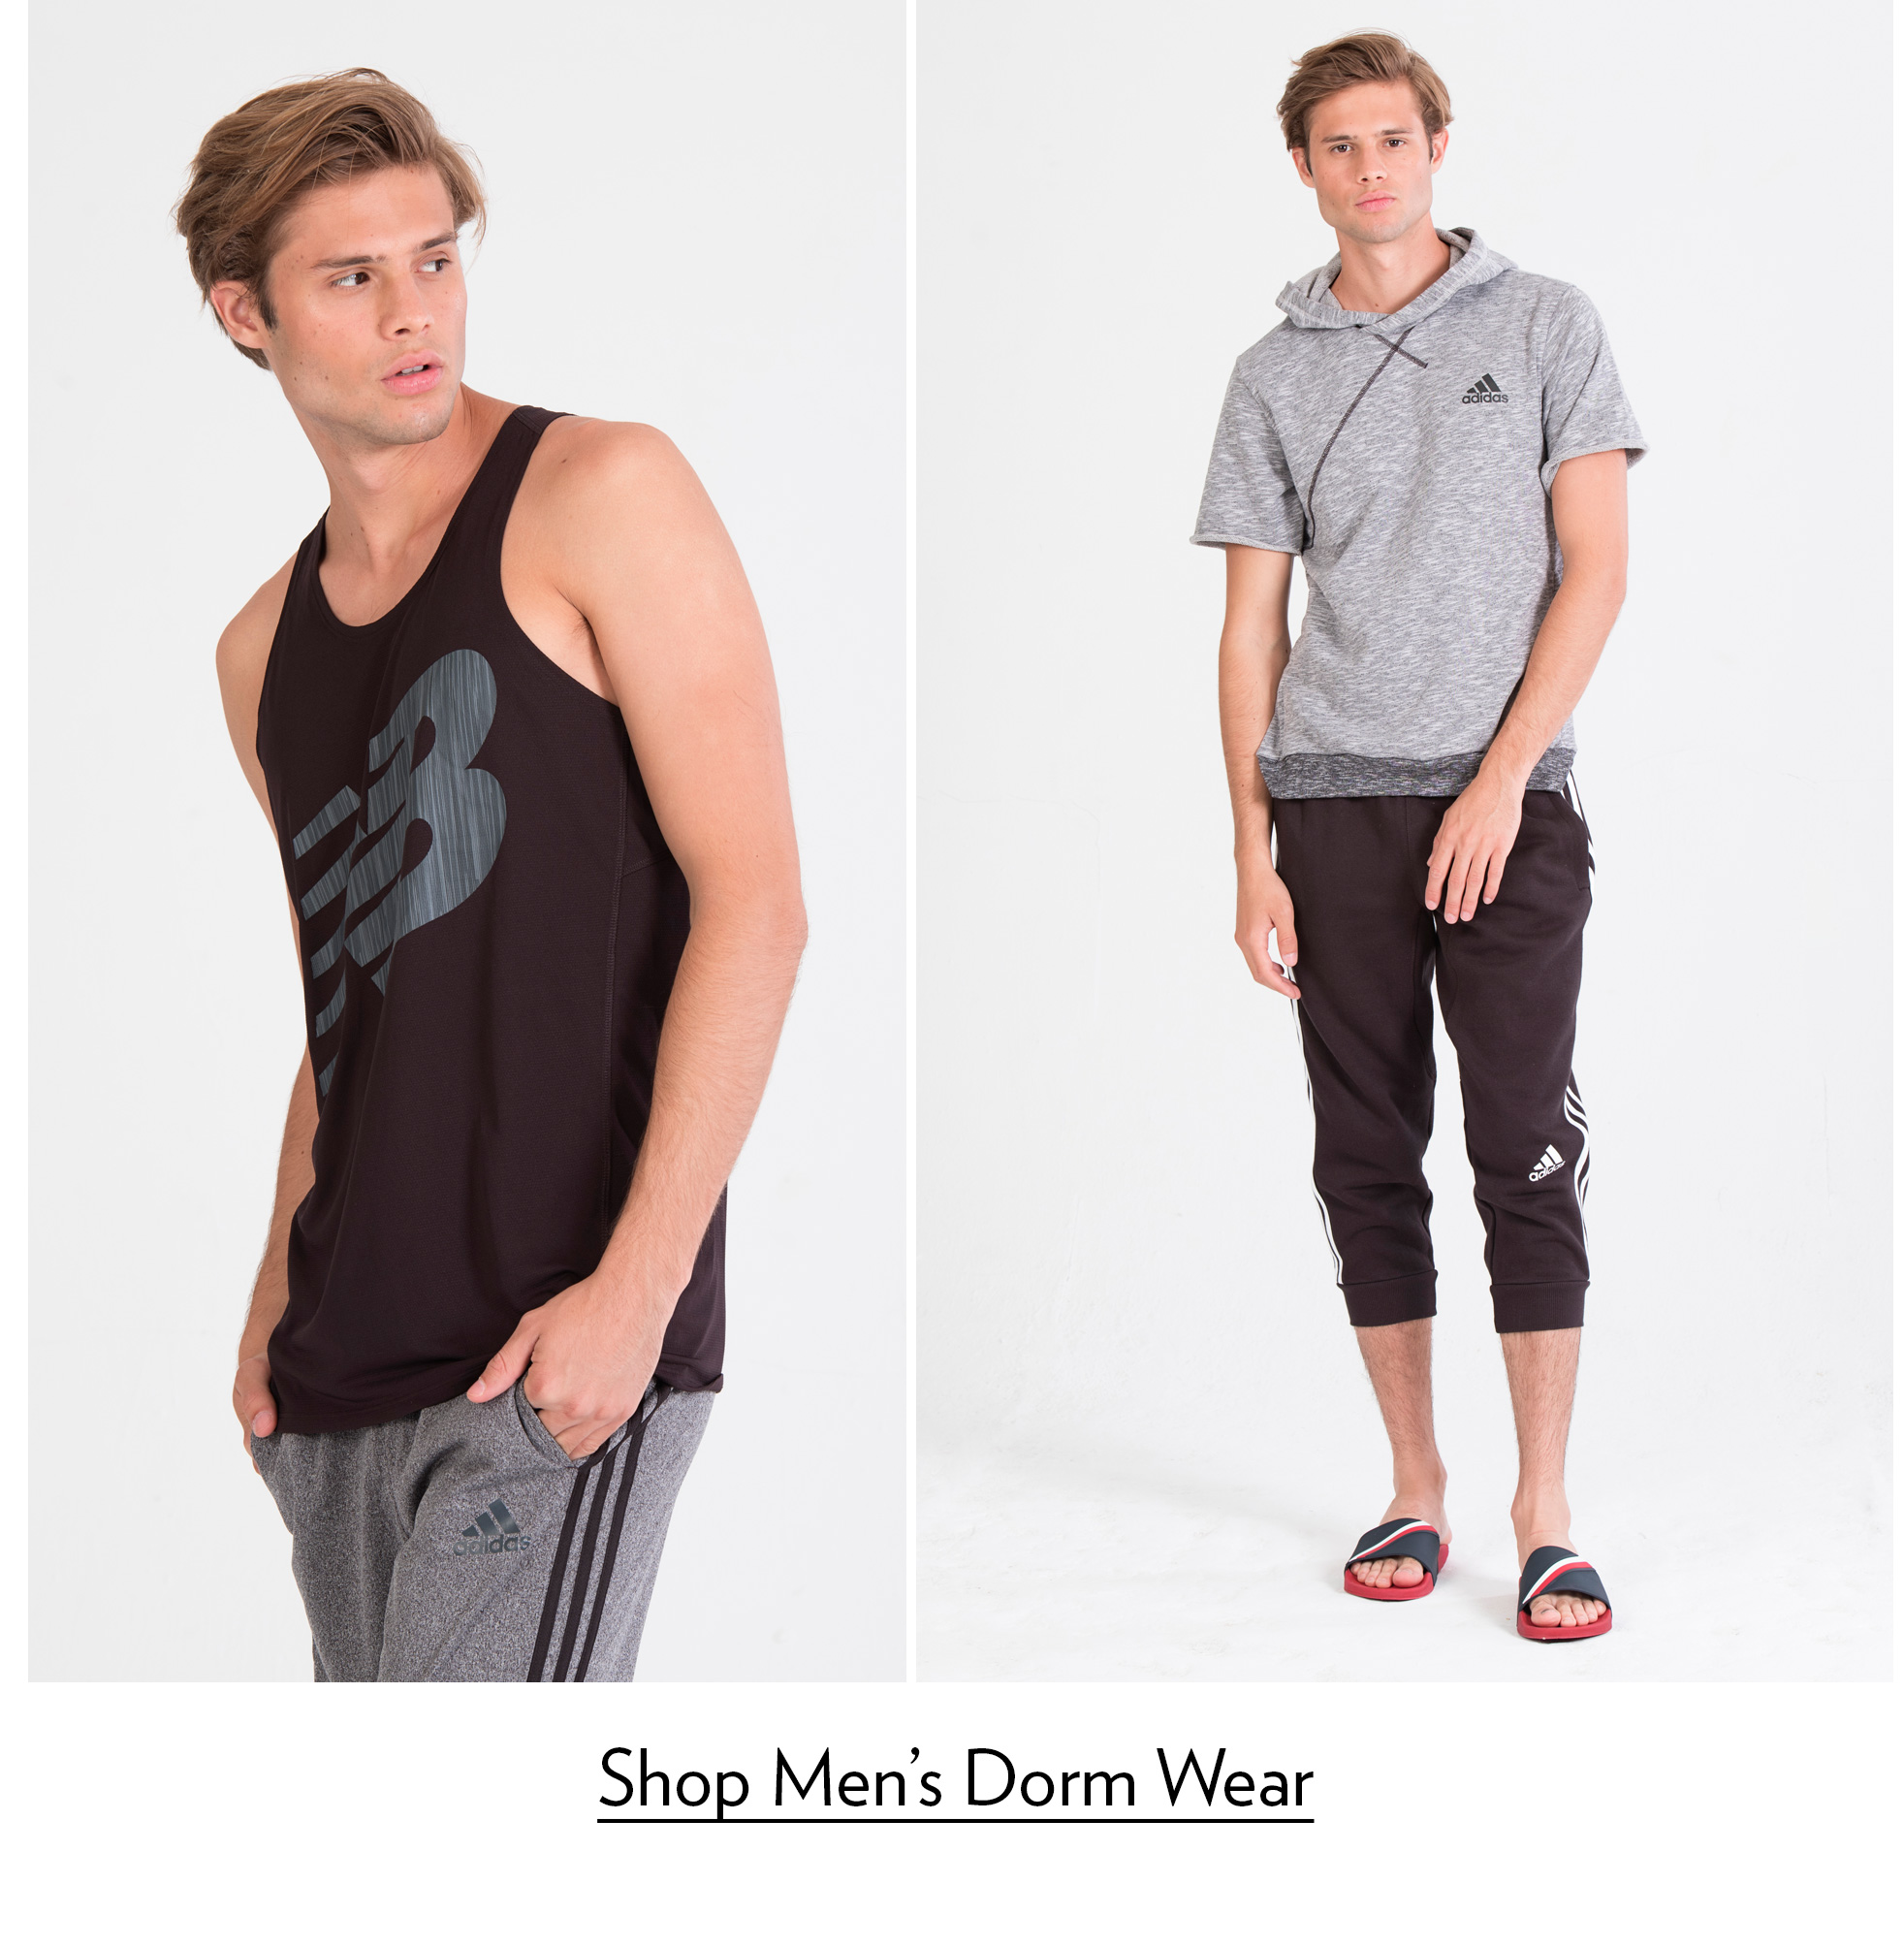 Men's Dorm Wear